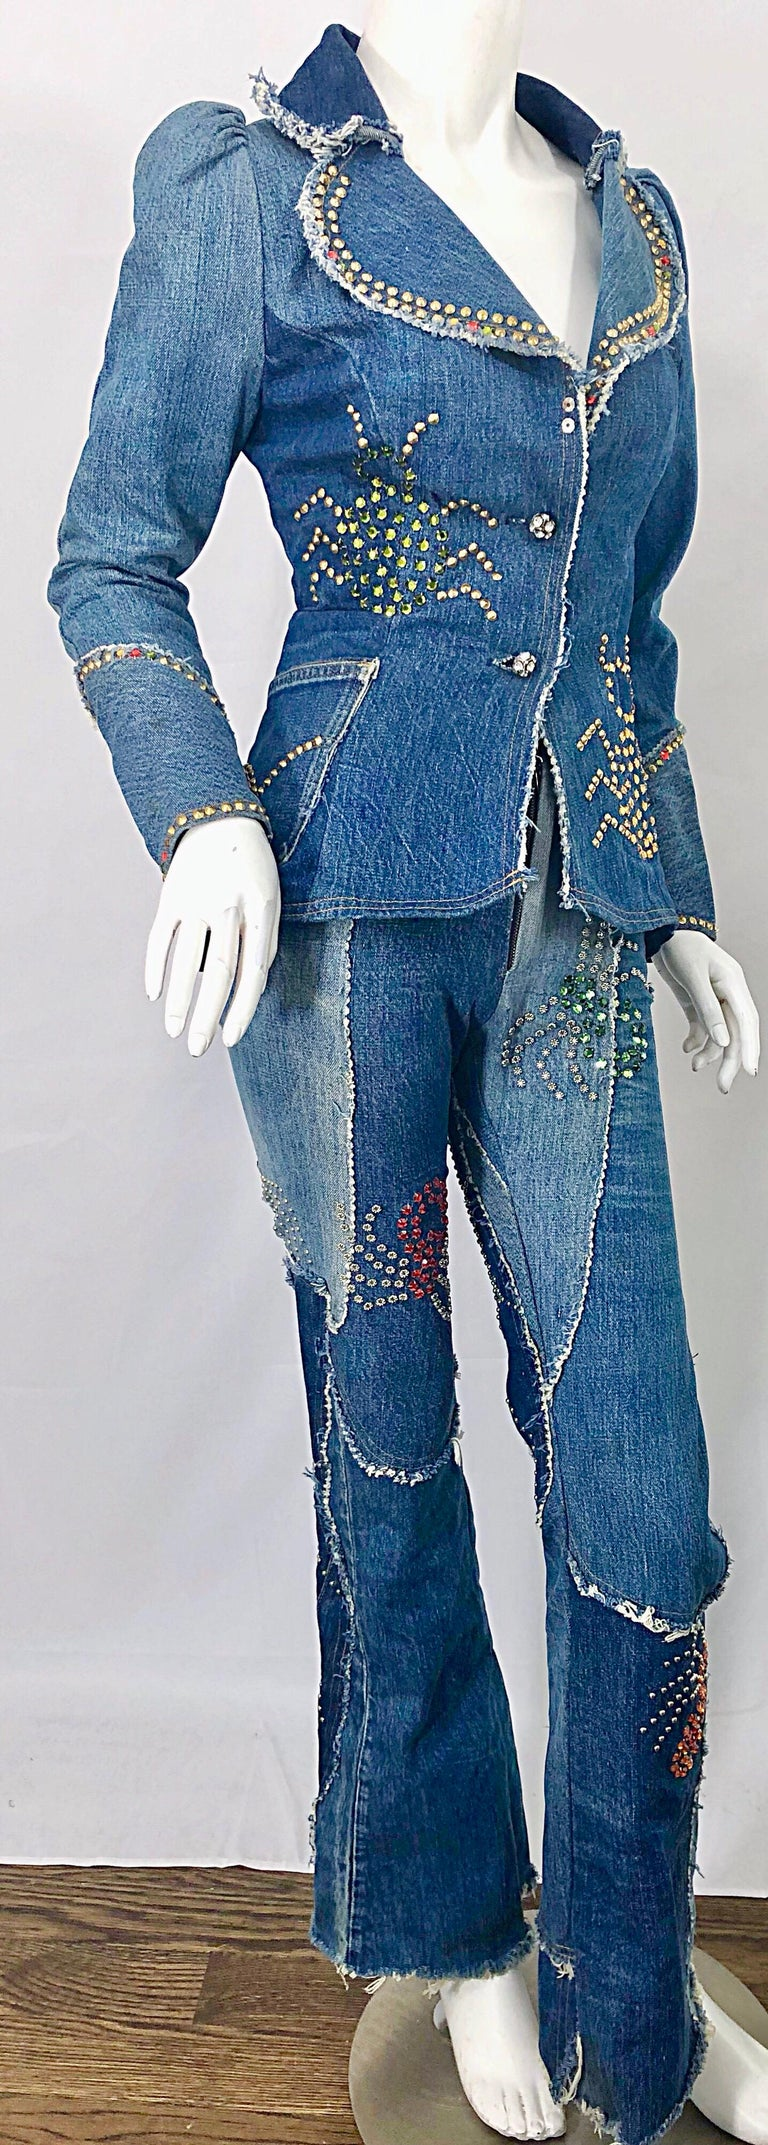 Musuem Piece Love, Melody Sabatasso 1970s Custom Blue Jean Denim Rhinestone Suit For Sale 12